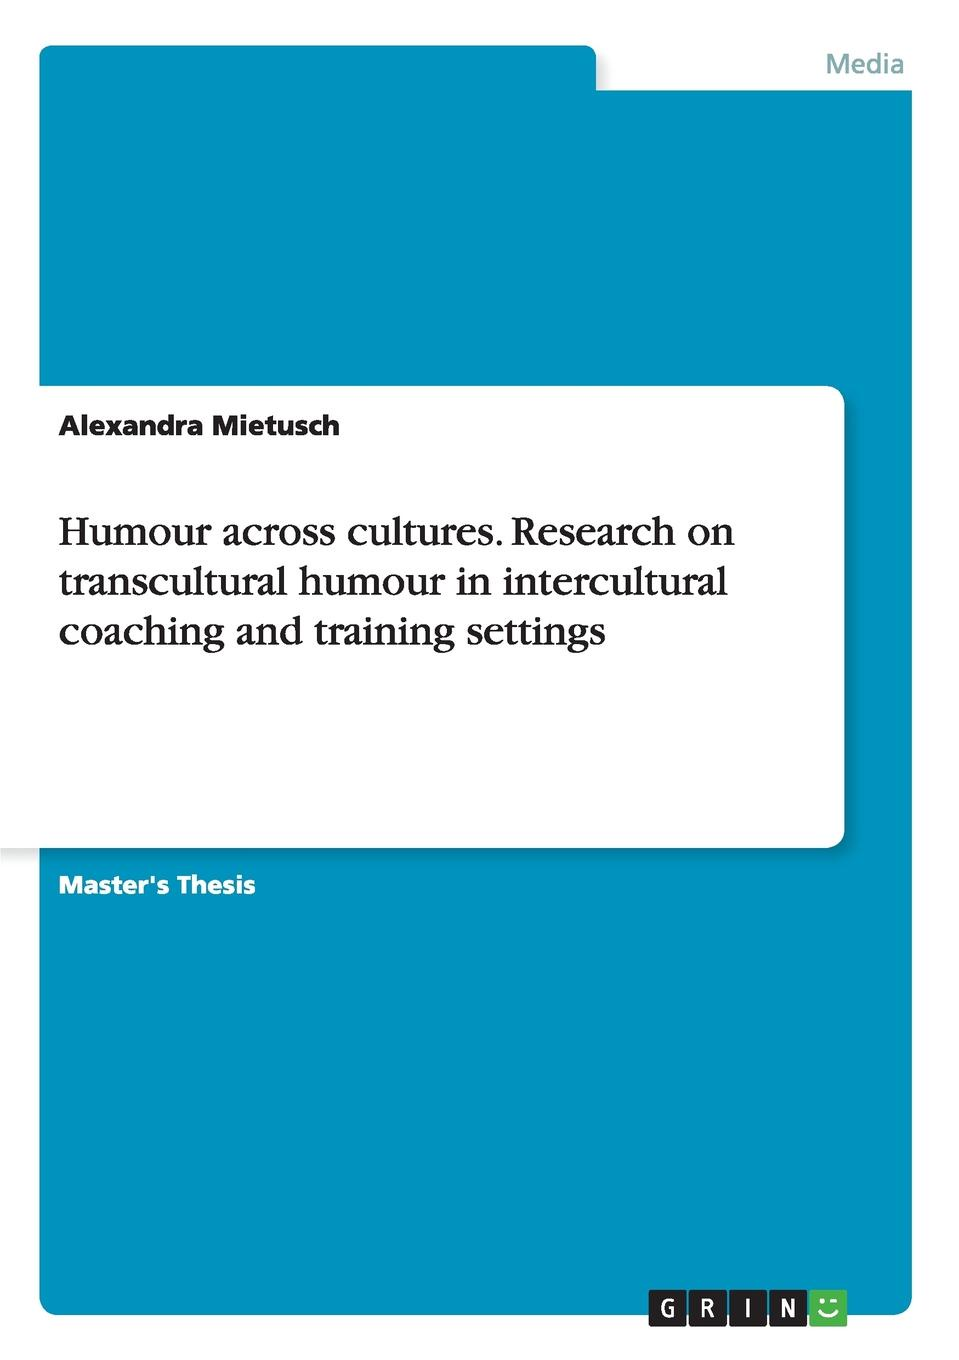 Alexandra Mietusch Humour across cultures. Research on transcultural humour in intercultural coaching and training settings andreas hepp transcultural communication